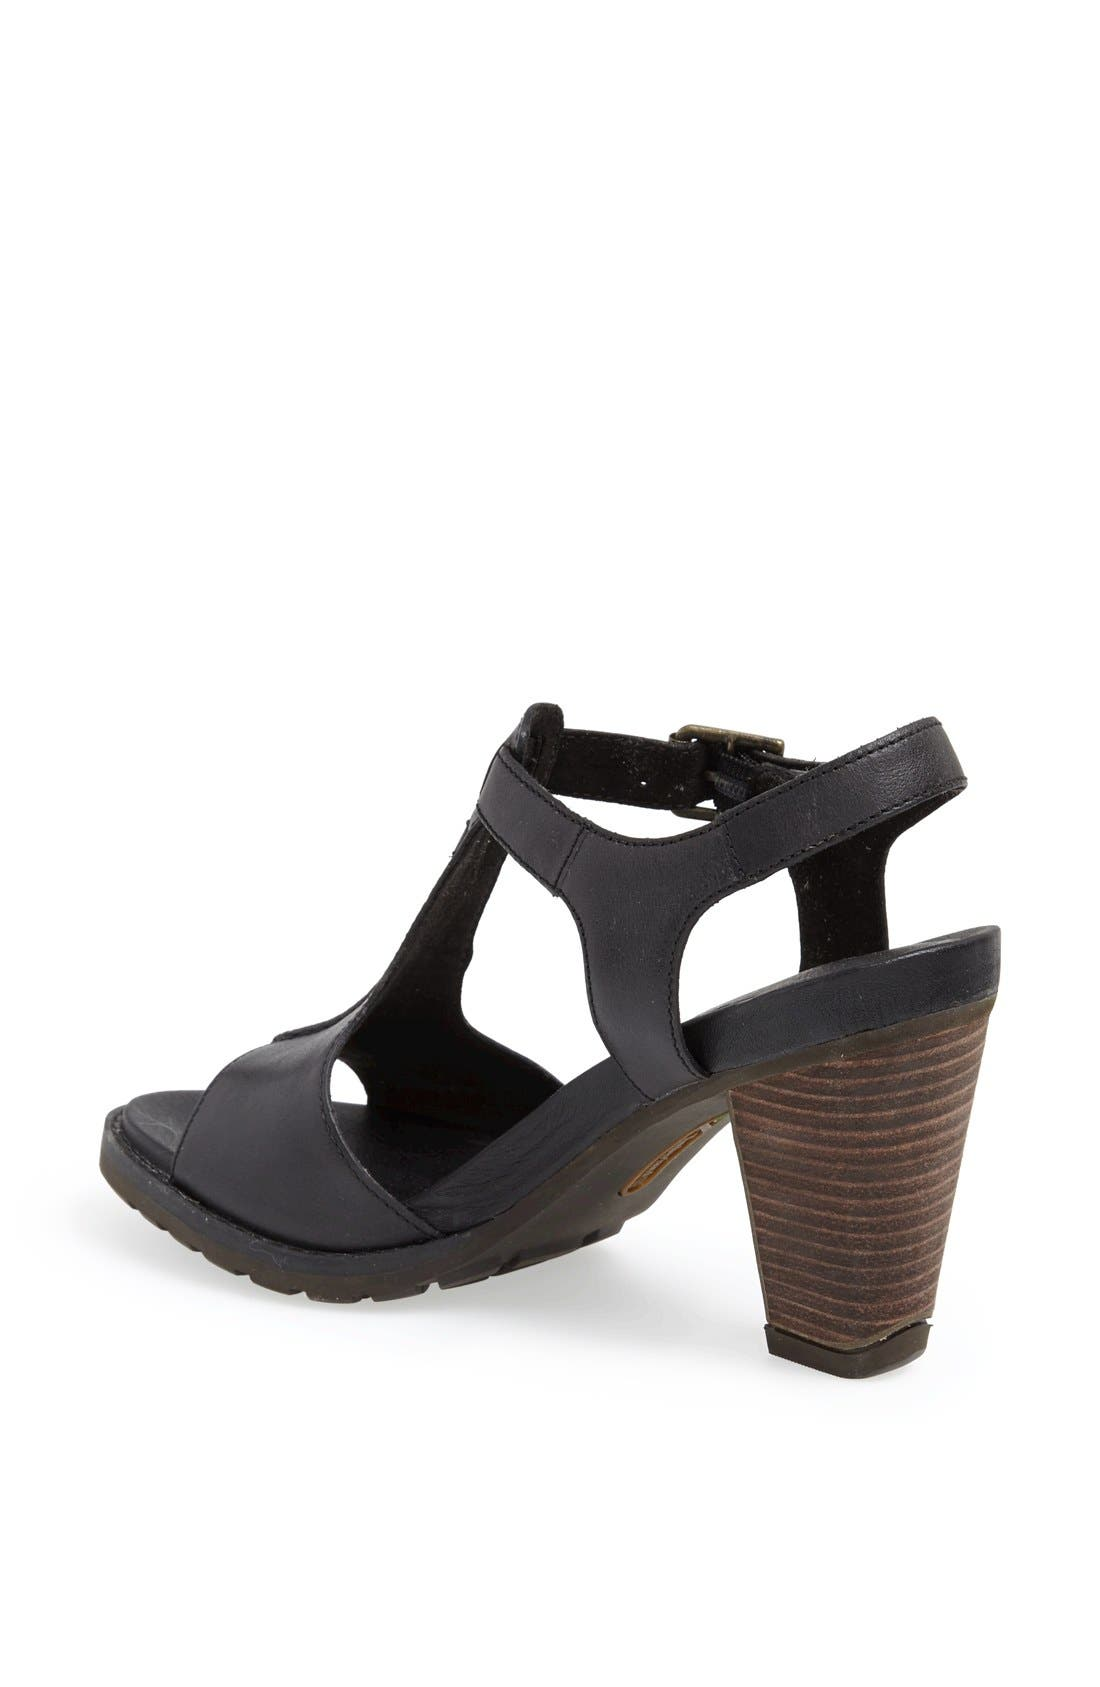 Earthkeepers<sup>®</sup> 'Stratham Heights' Sandal,                             Alternate thumbnail 4, color,                             001